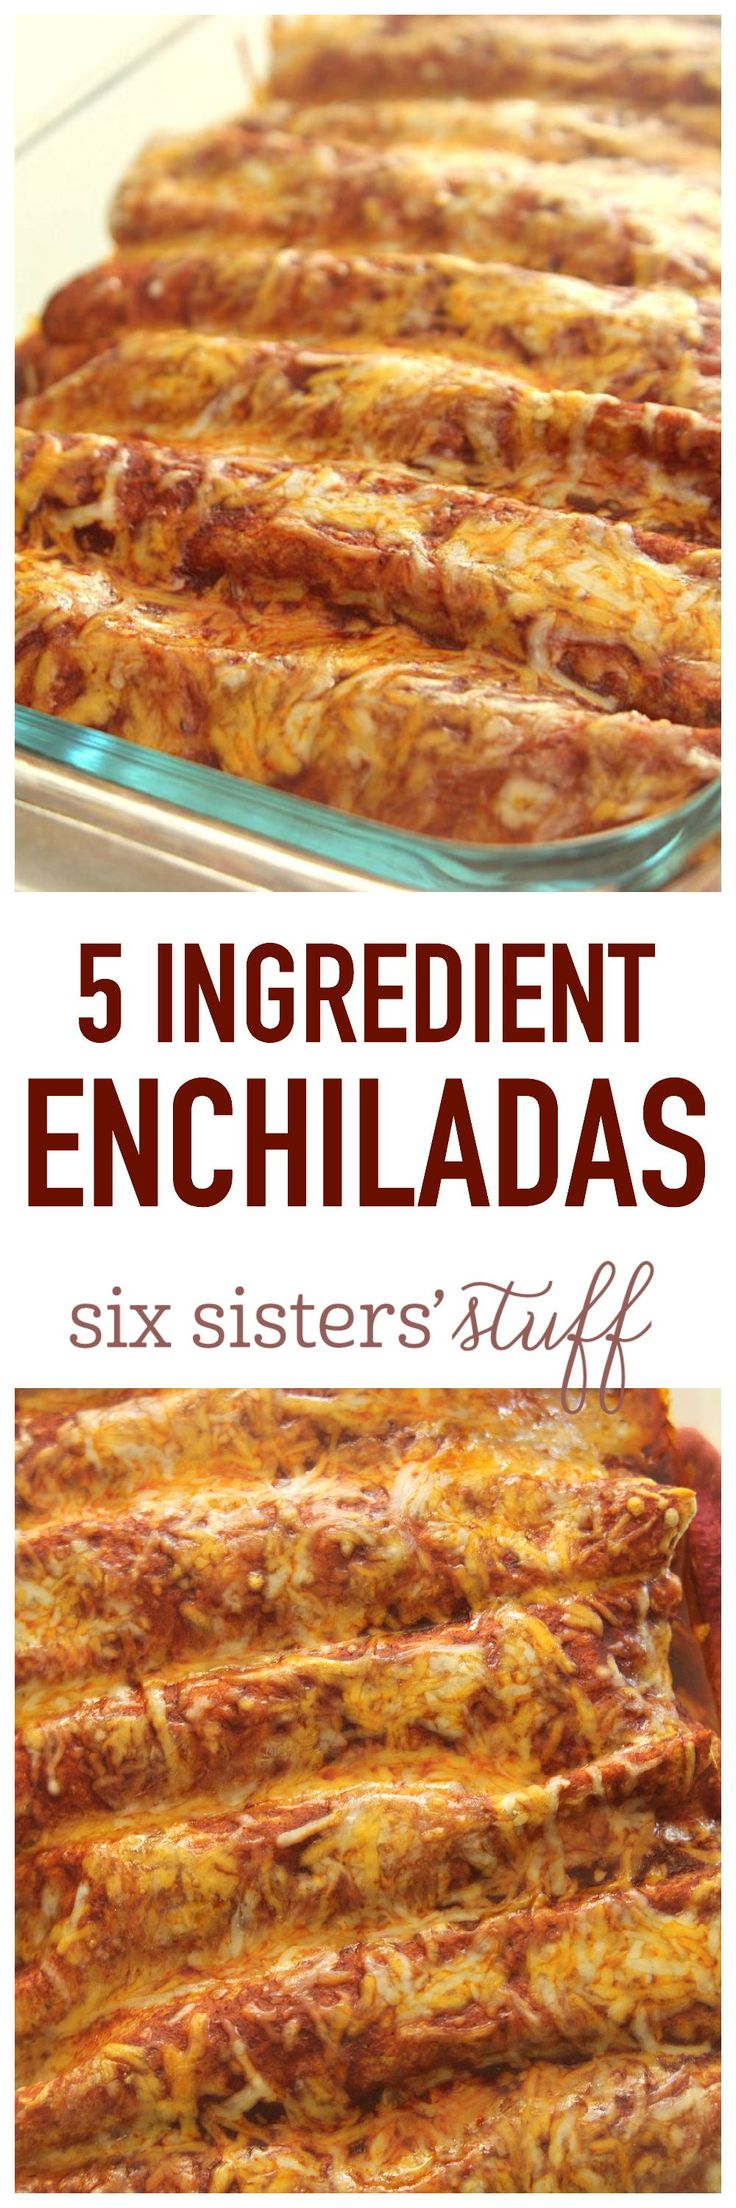 5 Ingredient Enchiladas on SixSistersStuff.com - dinner doesn't get any easier than this!